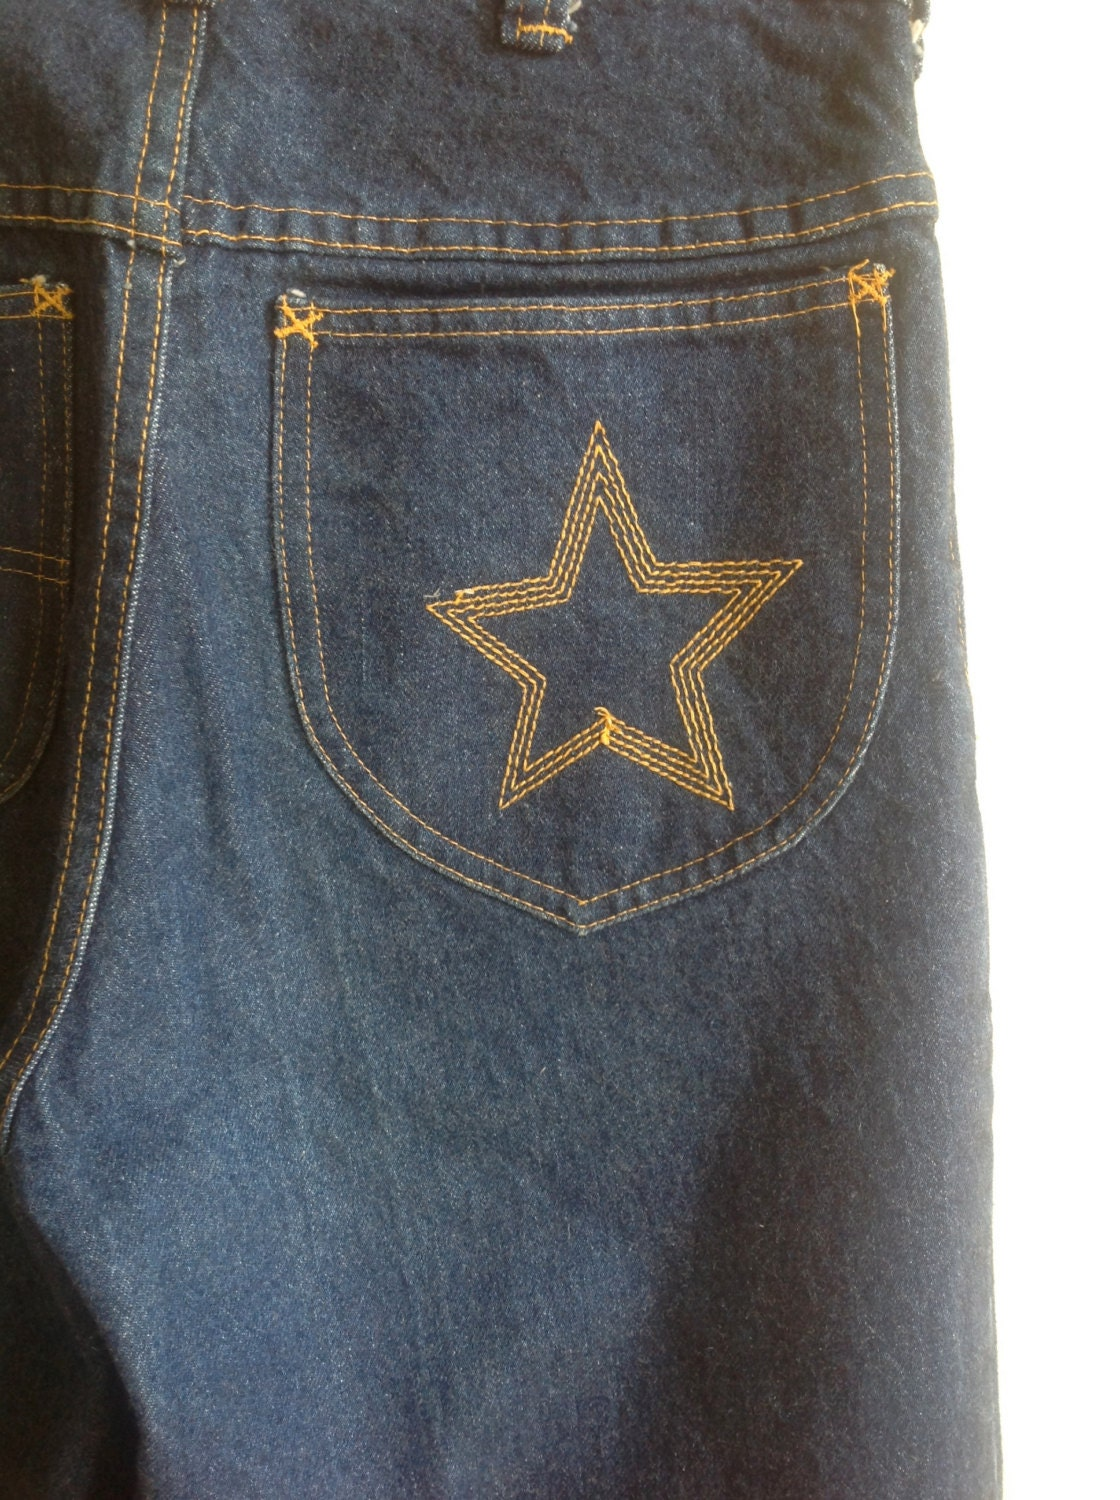 Vintage 70s H A S H Bell Bottom Jeans Glam Rock Like By